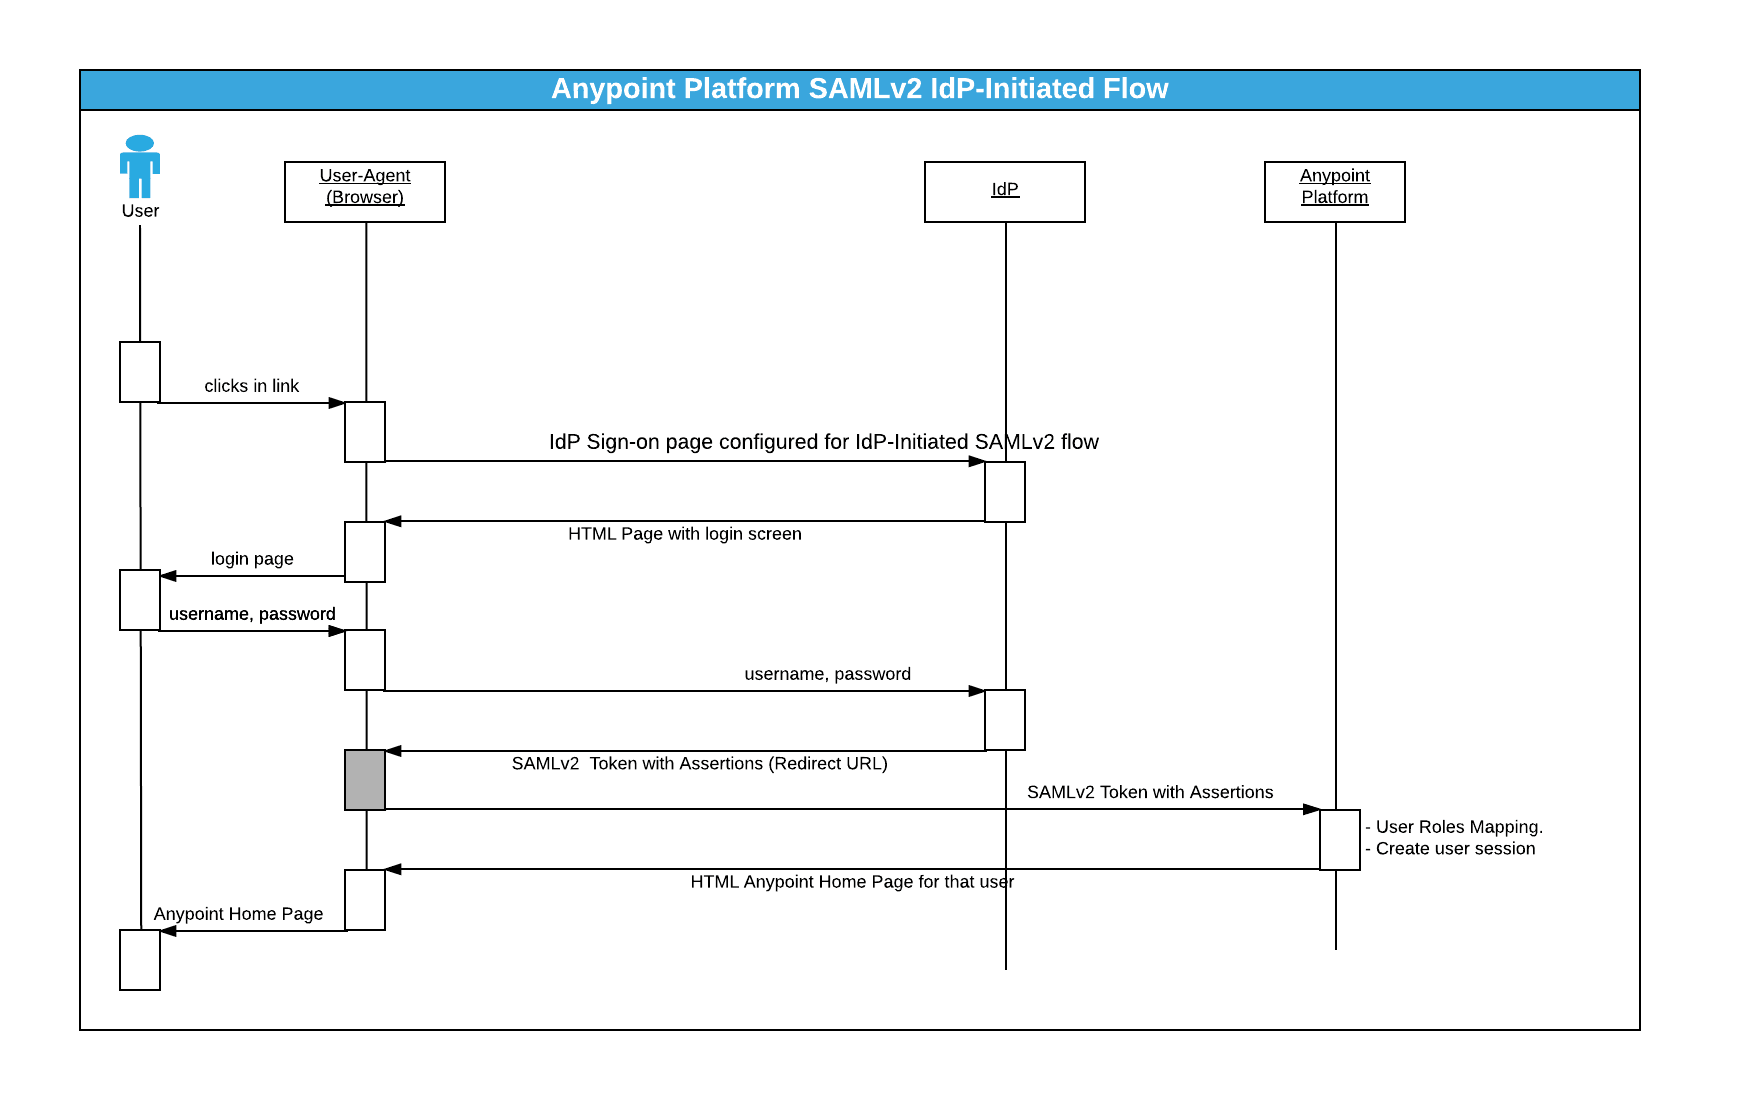 Anypoint Platform Single Sign-On (SSO) using SAML